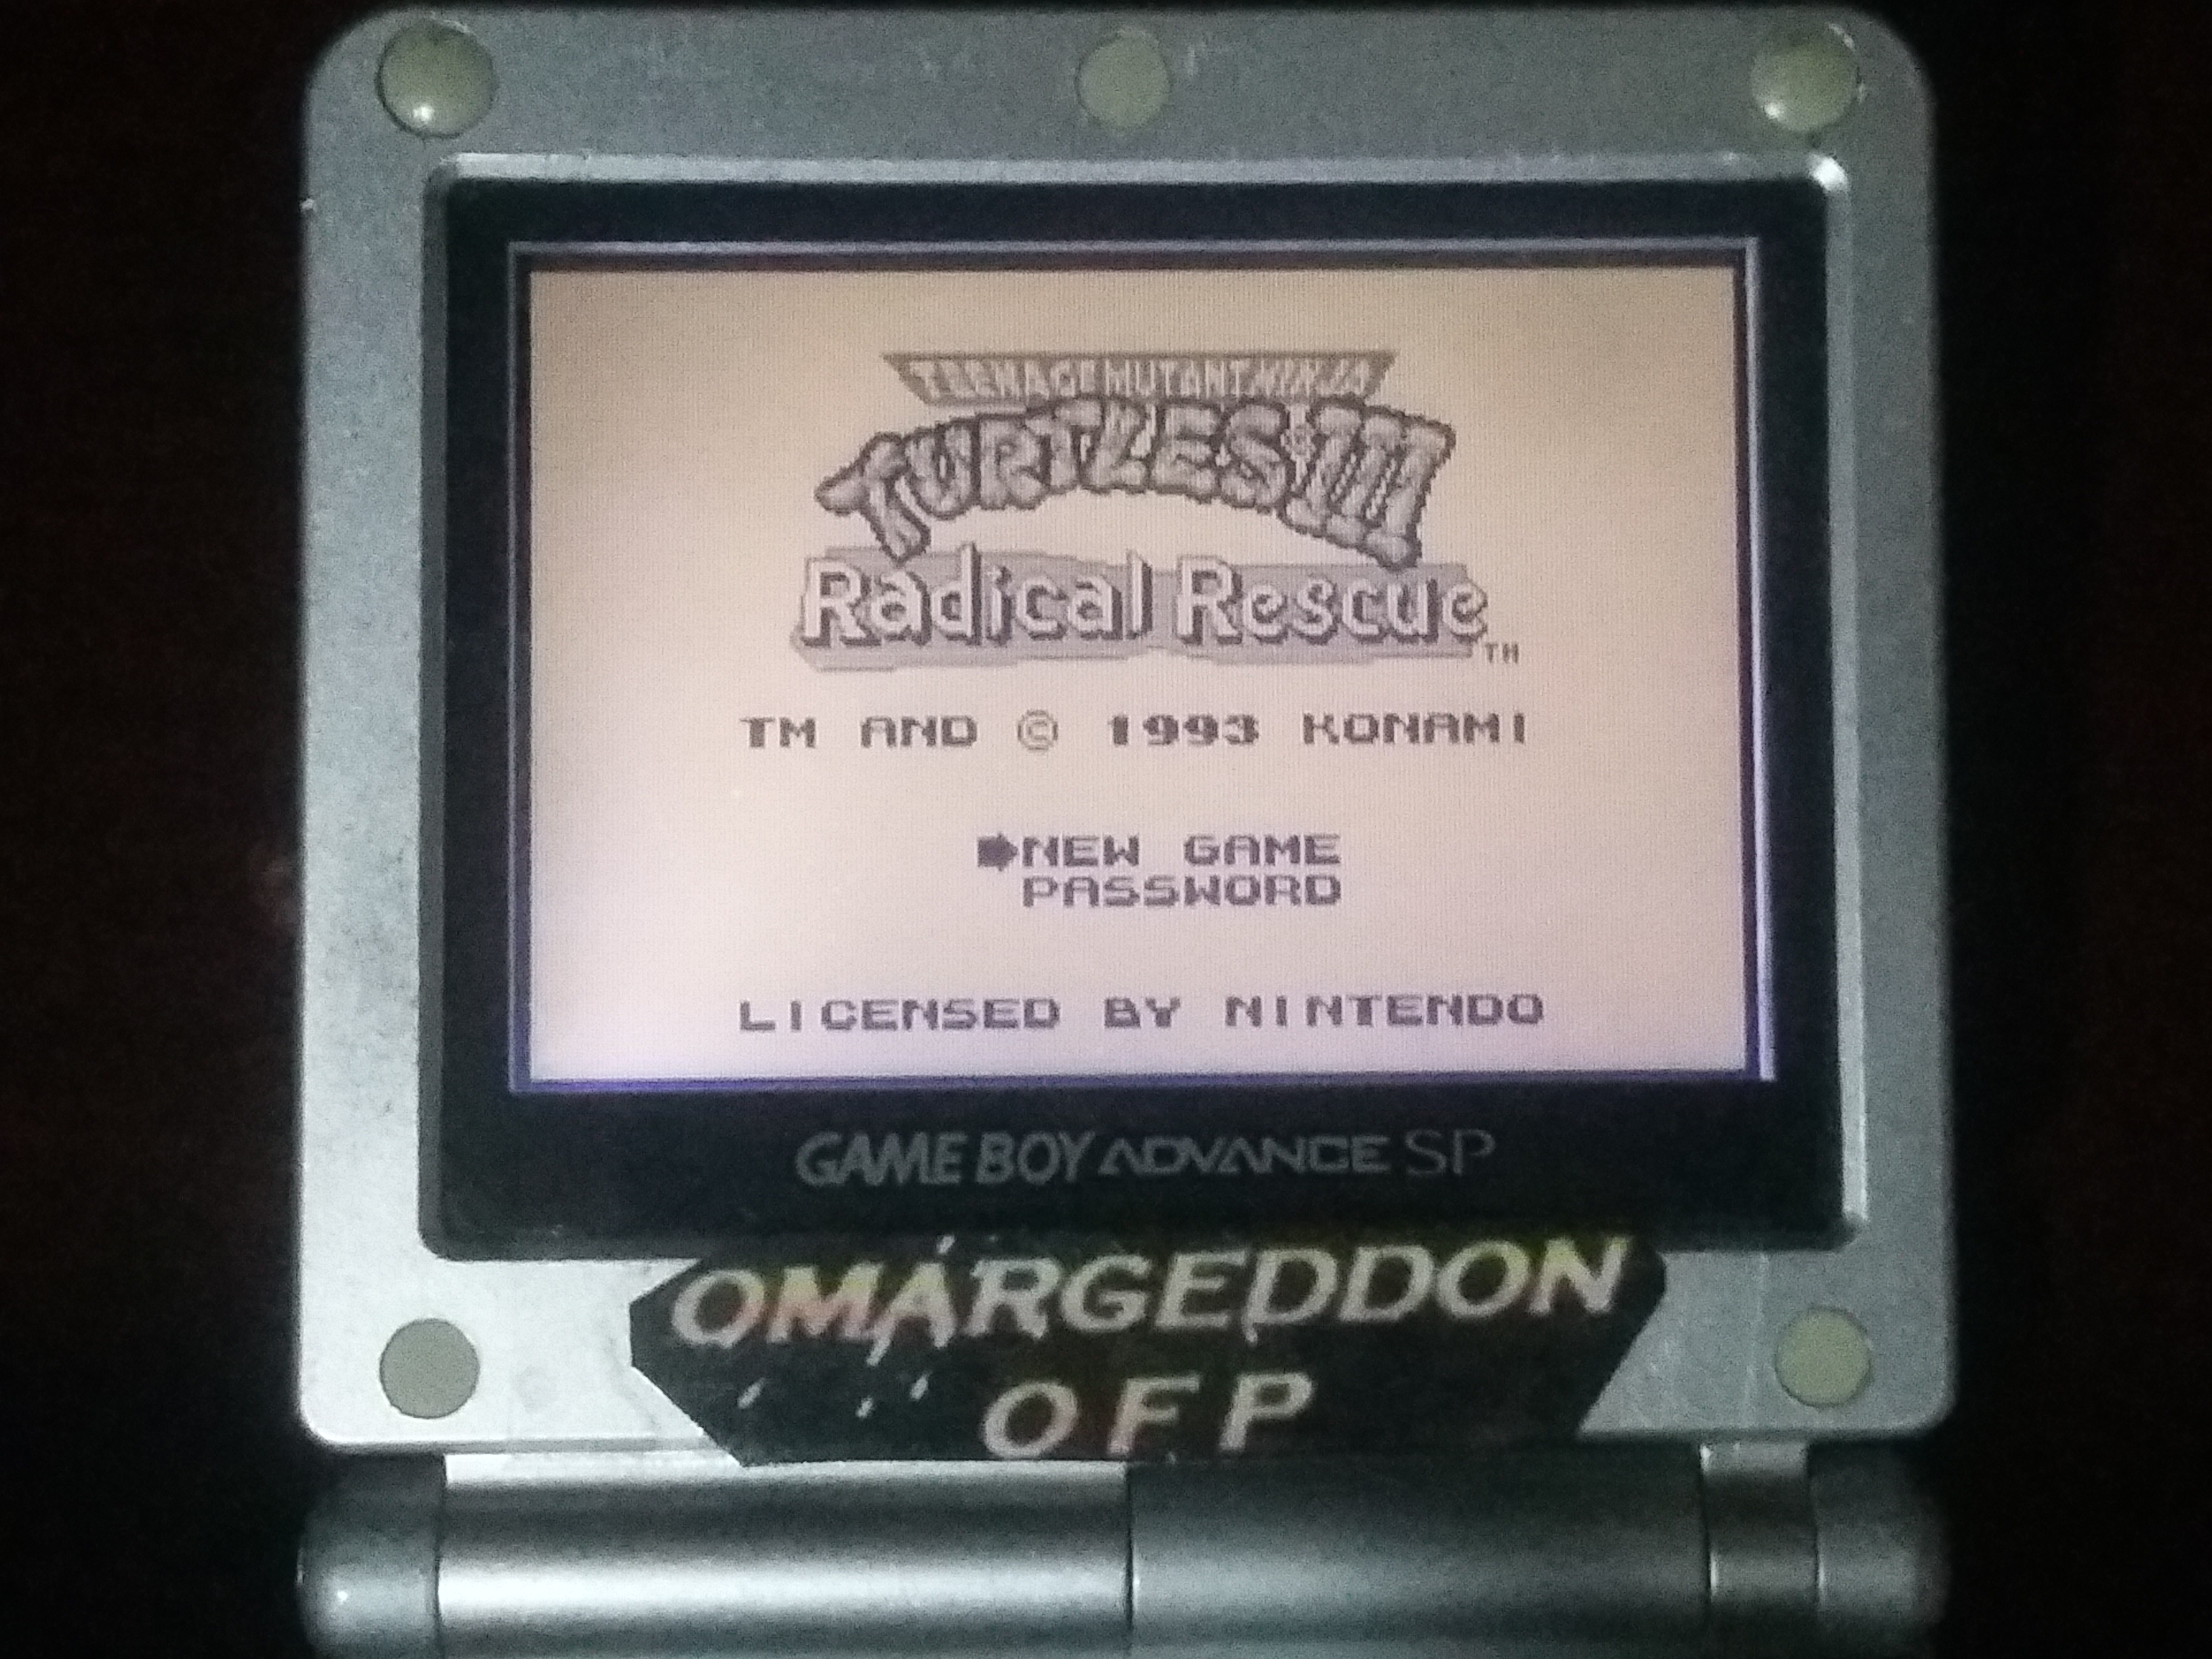 omargeddon: Teenage Mutant Ninja Turtles III: Radical Rescue (Game Boy) 9,150 points on 2018-01-15 00:02:31